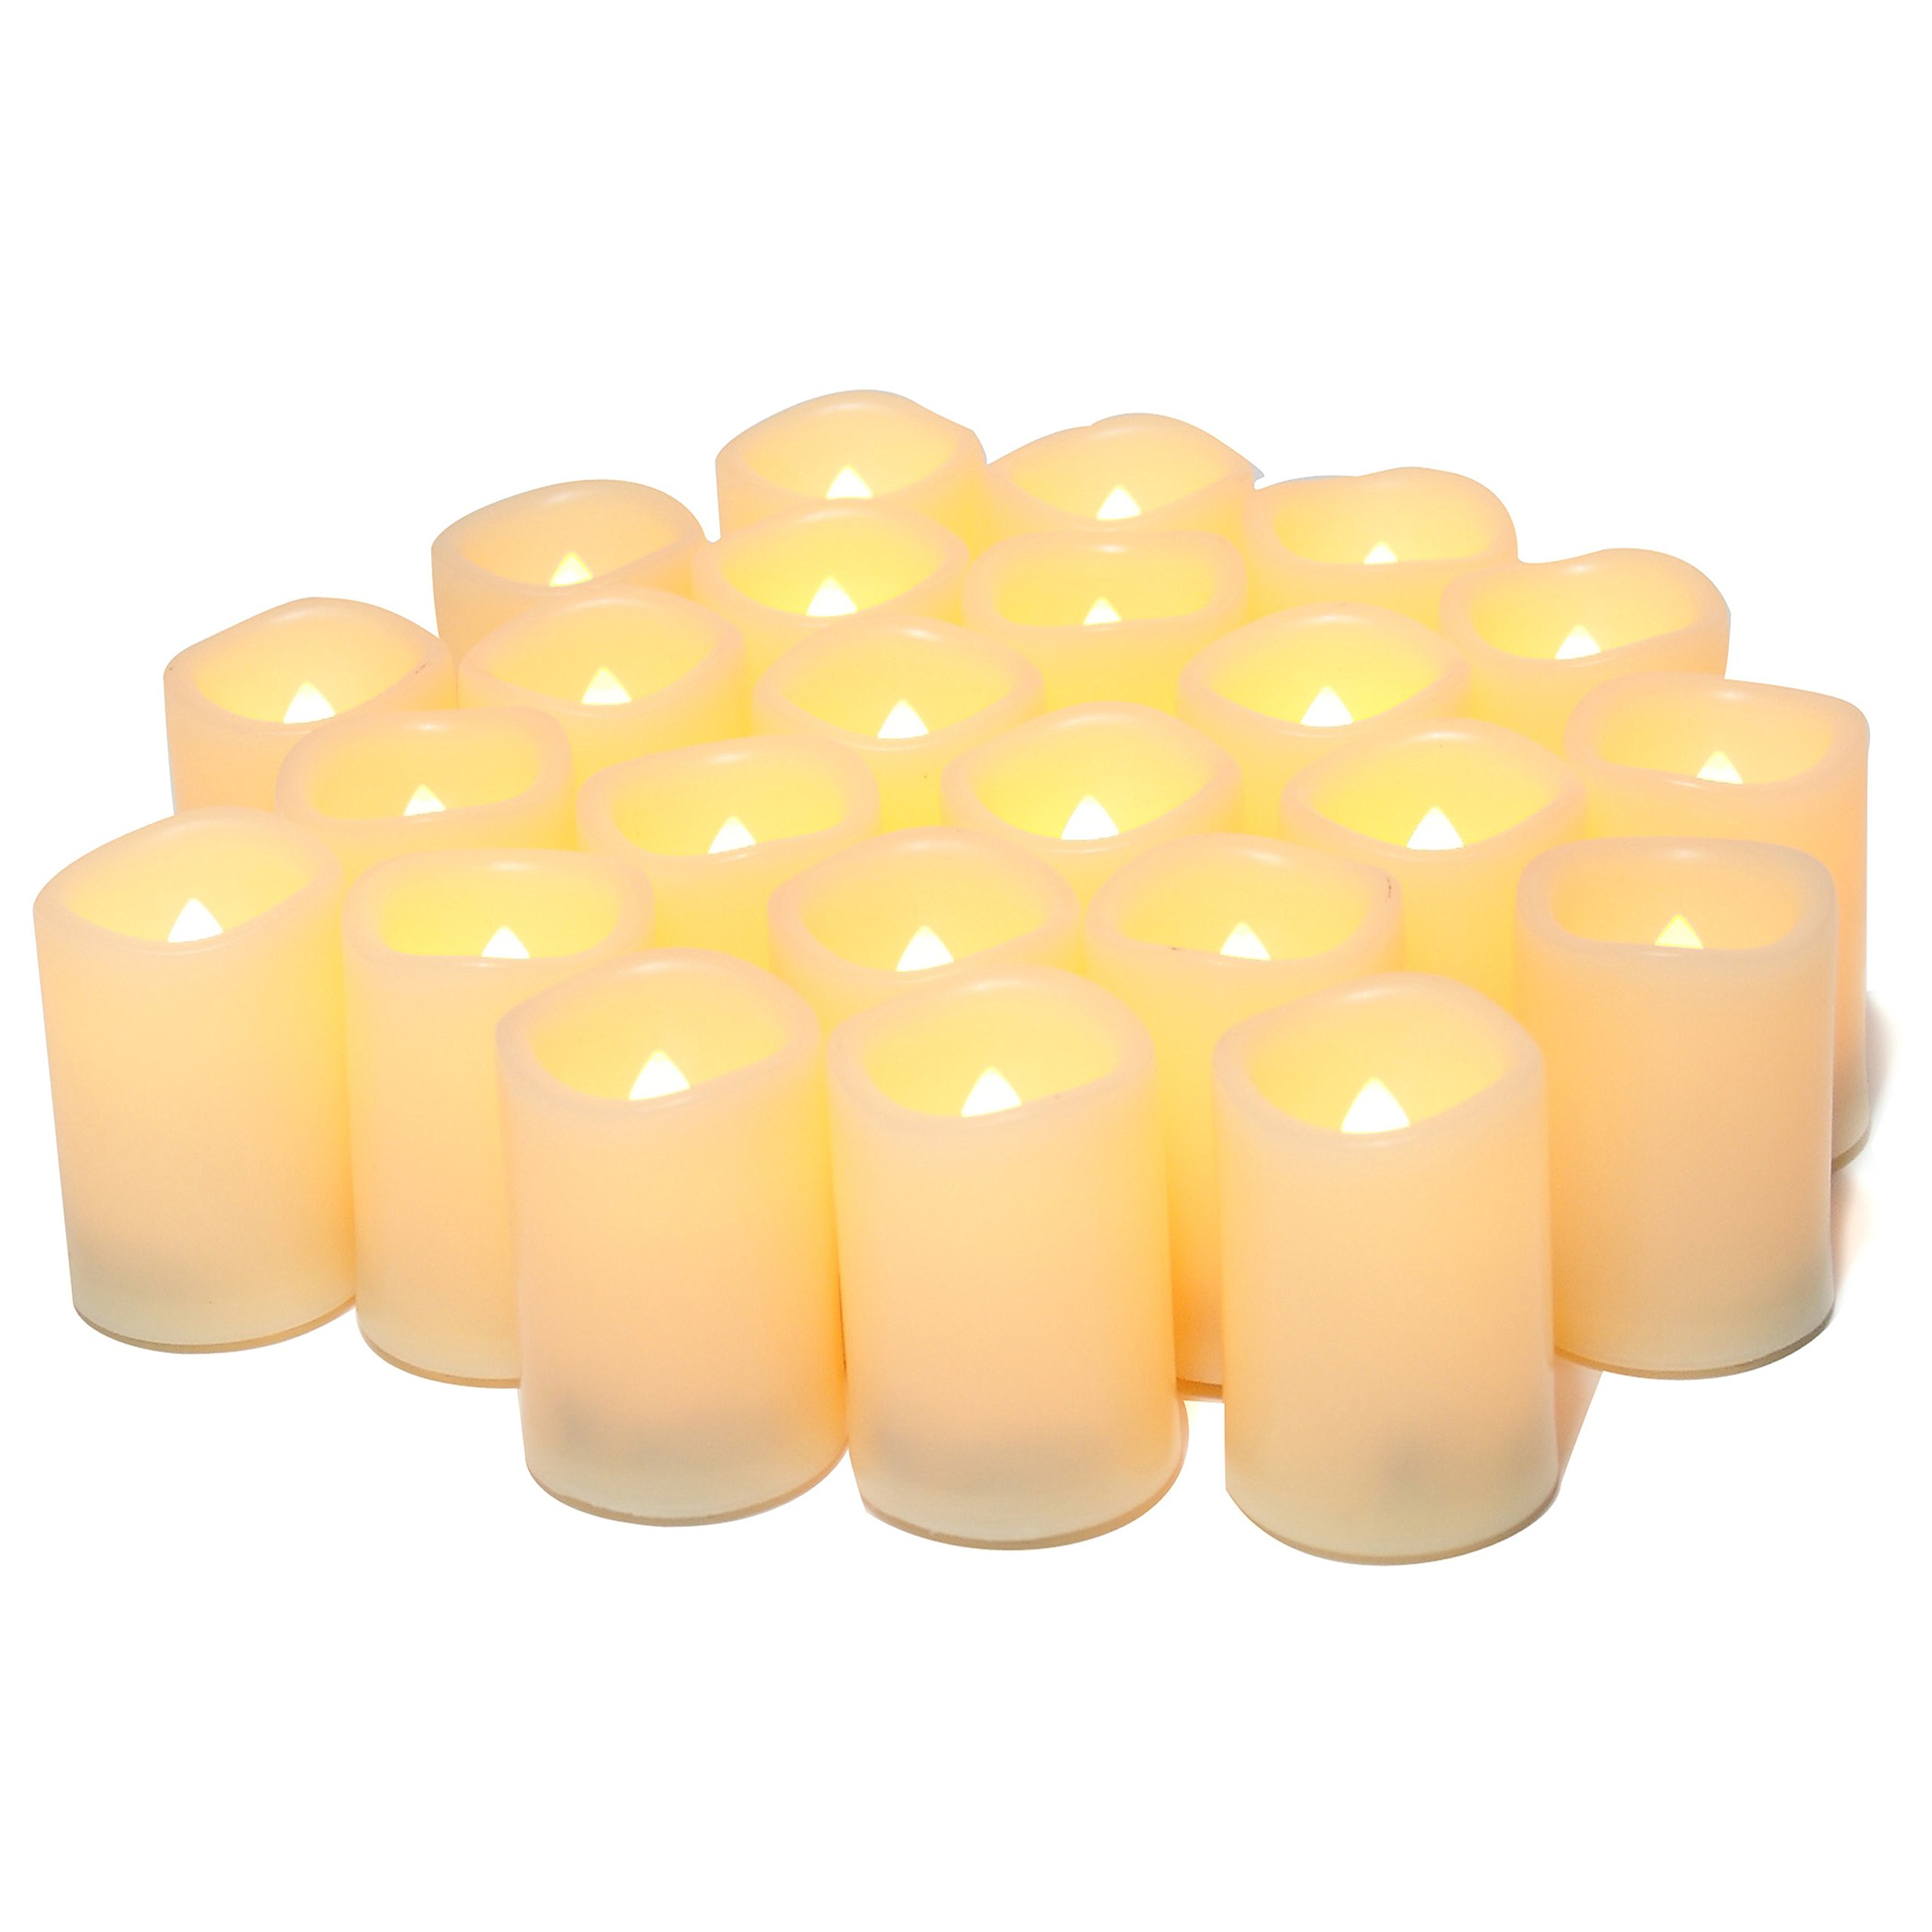 Flameless Flickering Votive Tea Lights Candles Bulk Battery Operated Set Of 24 Fake Candles/Flickering Tealights for Garden wedding,Party,Festival Decorations etc (Batteries Included) by CANDLE IDEA